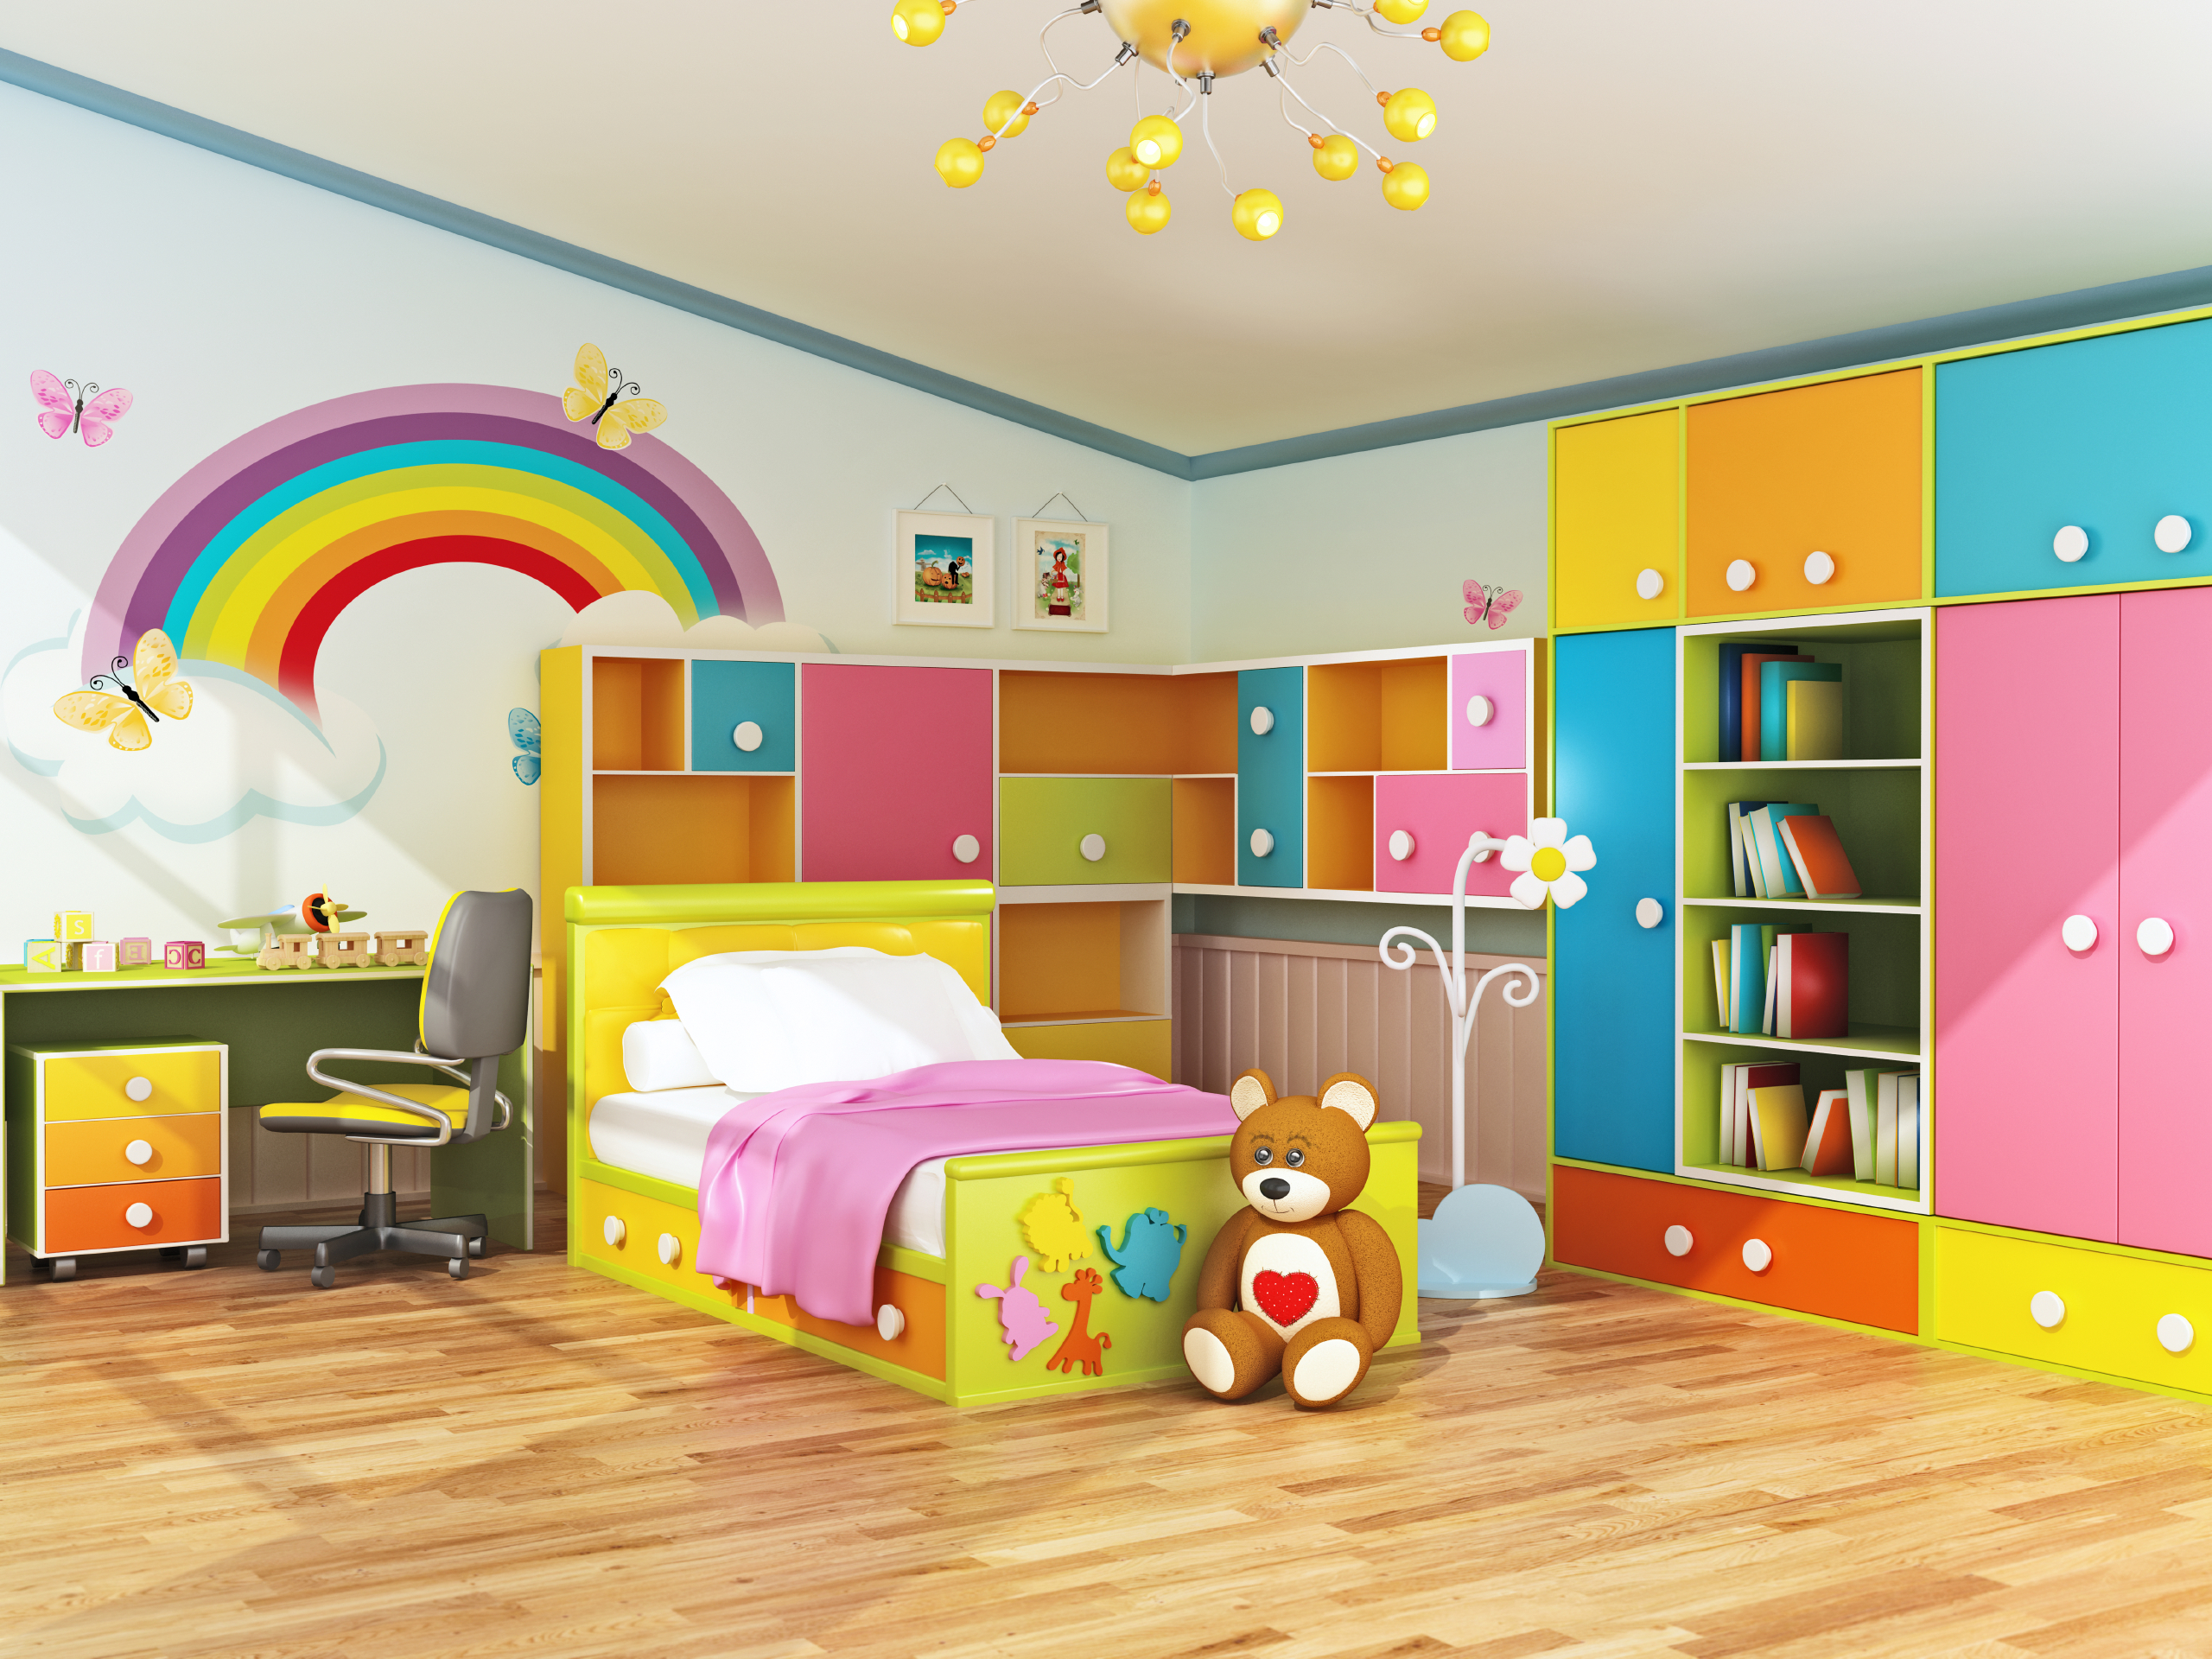 Plan ahead when decorating kids 39 bedrooms rismedia 39 s housecall - Kids room decoration ...